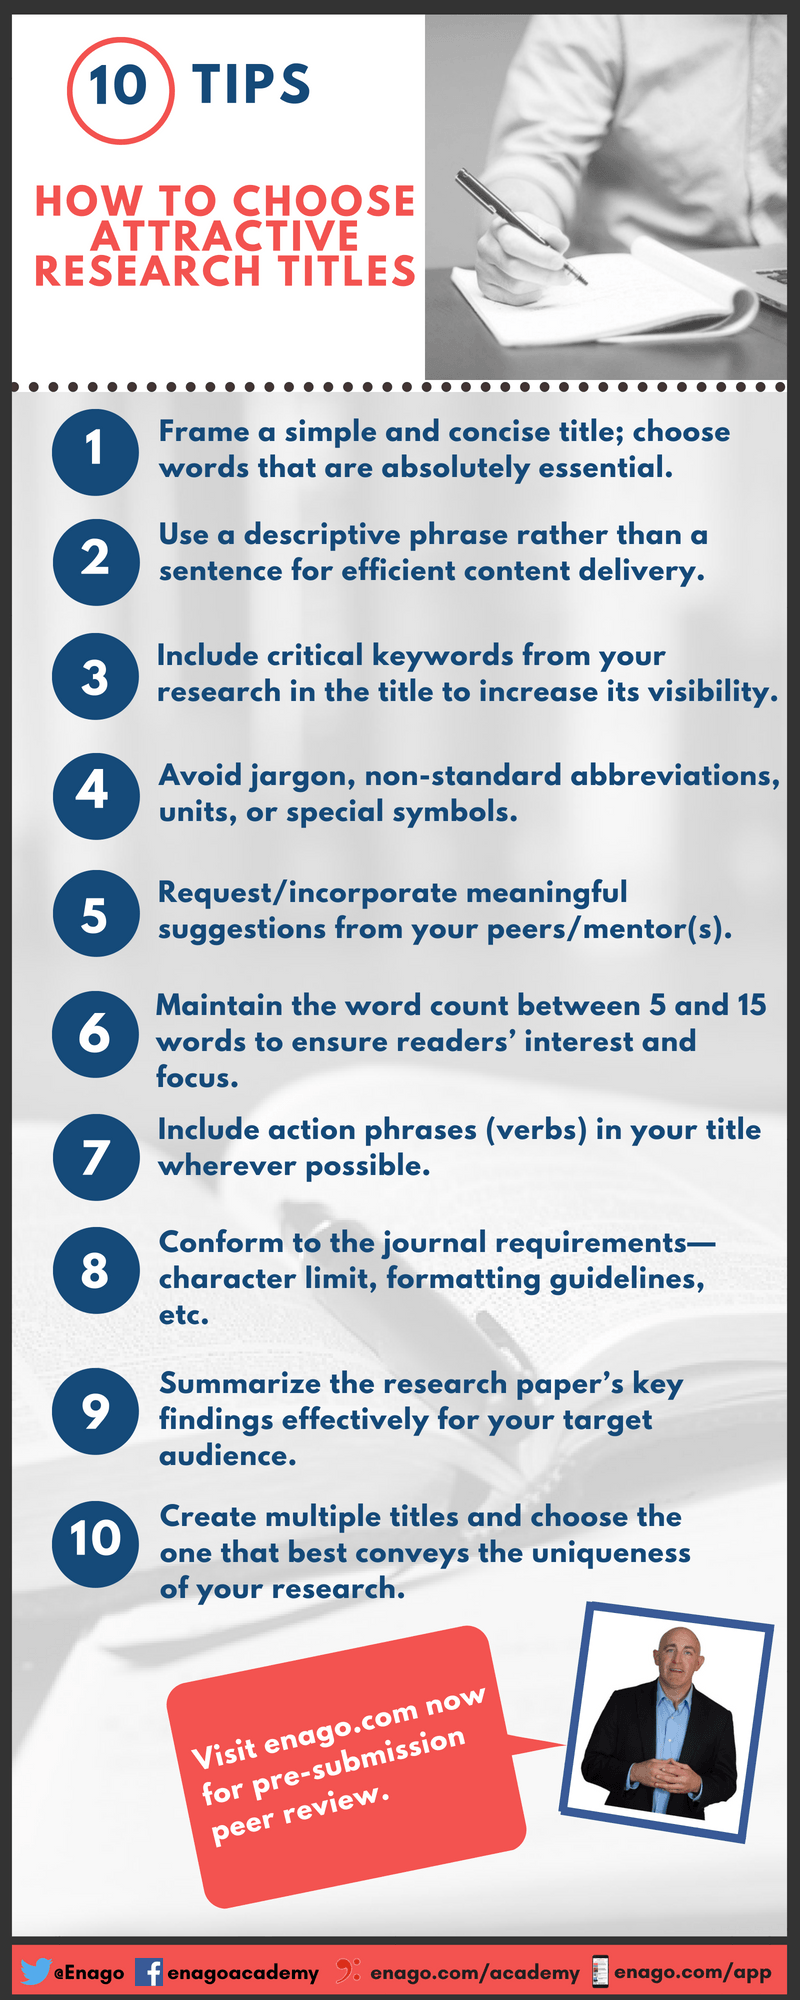 5 Important Tips On Choosing a Research Paper Title - Enago Academy